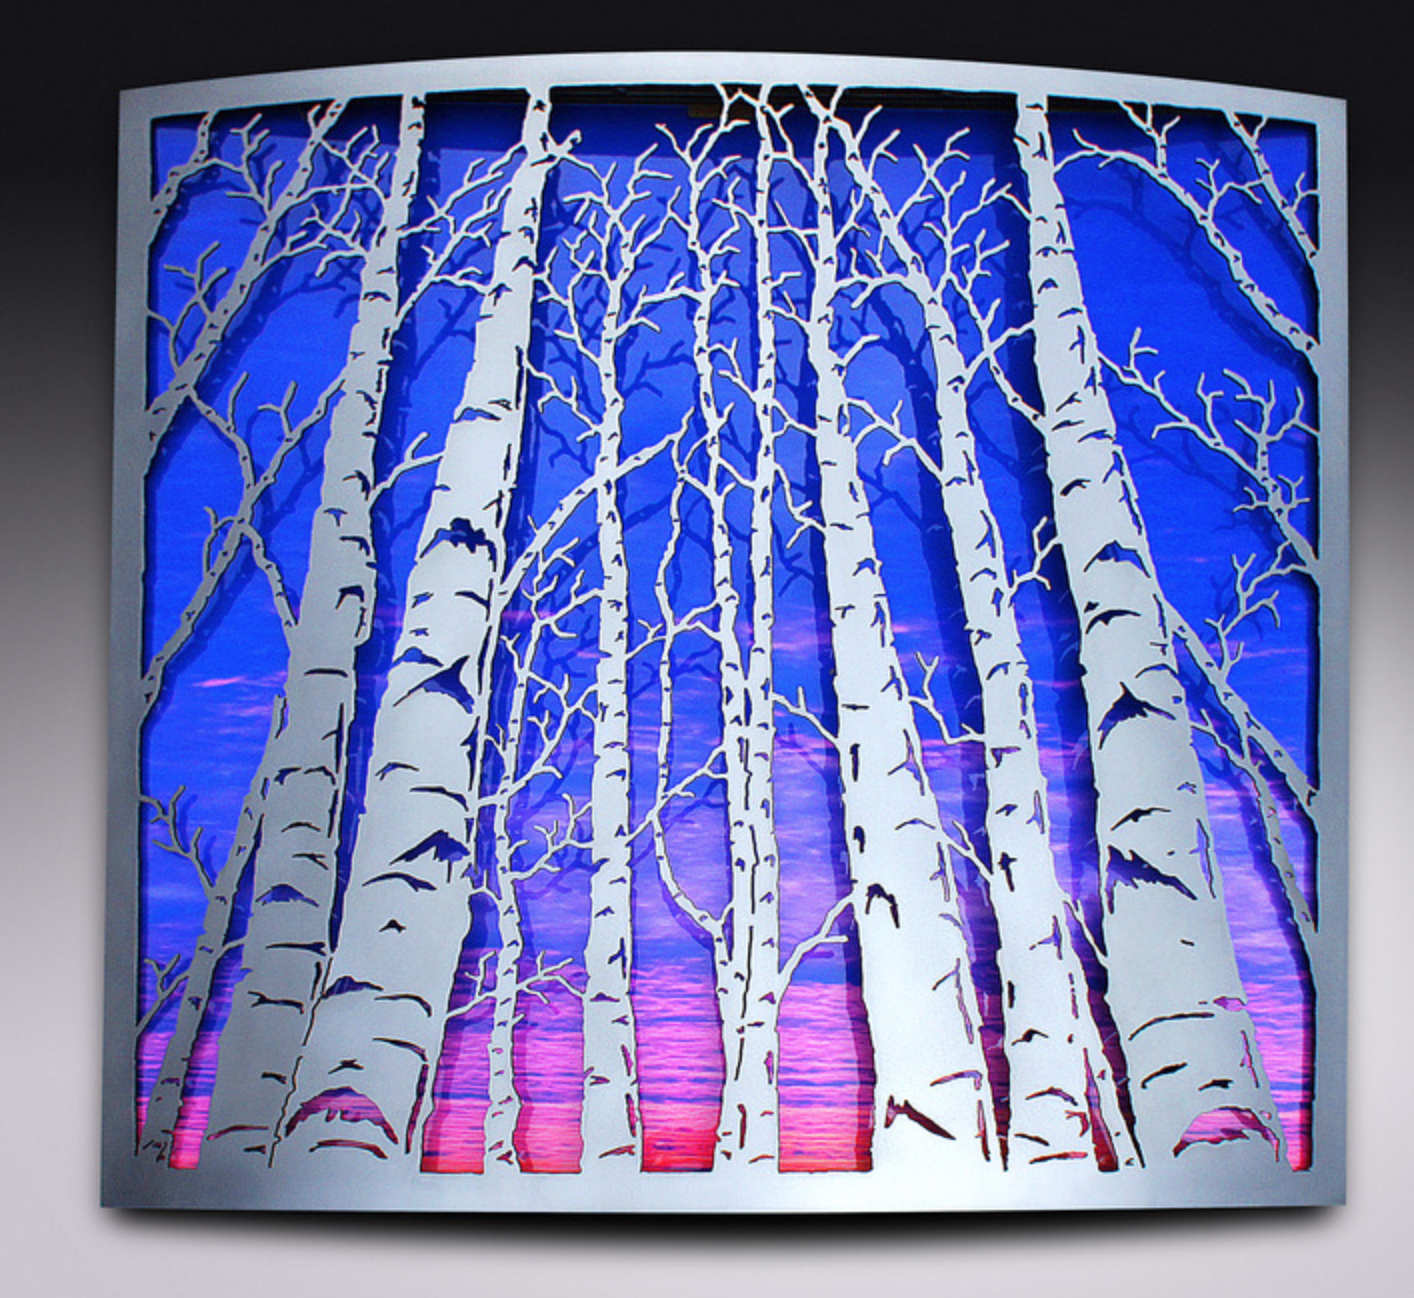 BenJamin Stielow - http://WWW.Bjamincustoms.comWith raw steel & stainless, I use a torch to cut & create the relief which is my work. I focus much on my imagination of trees, taking great pride in my patinas; no paints, pigments, or dyes are used